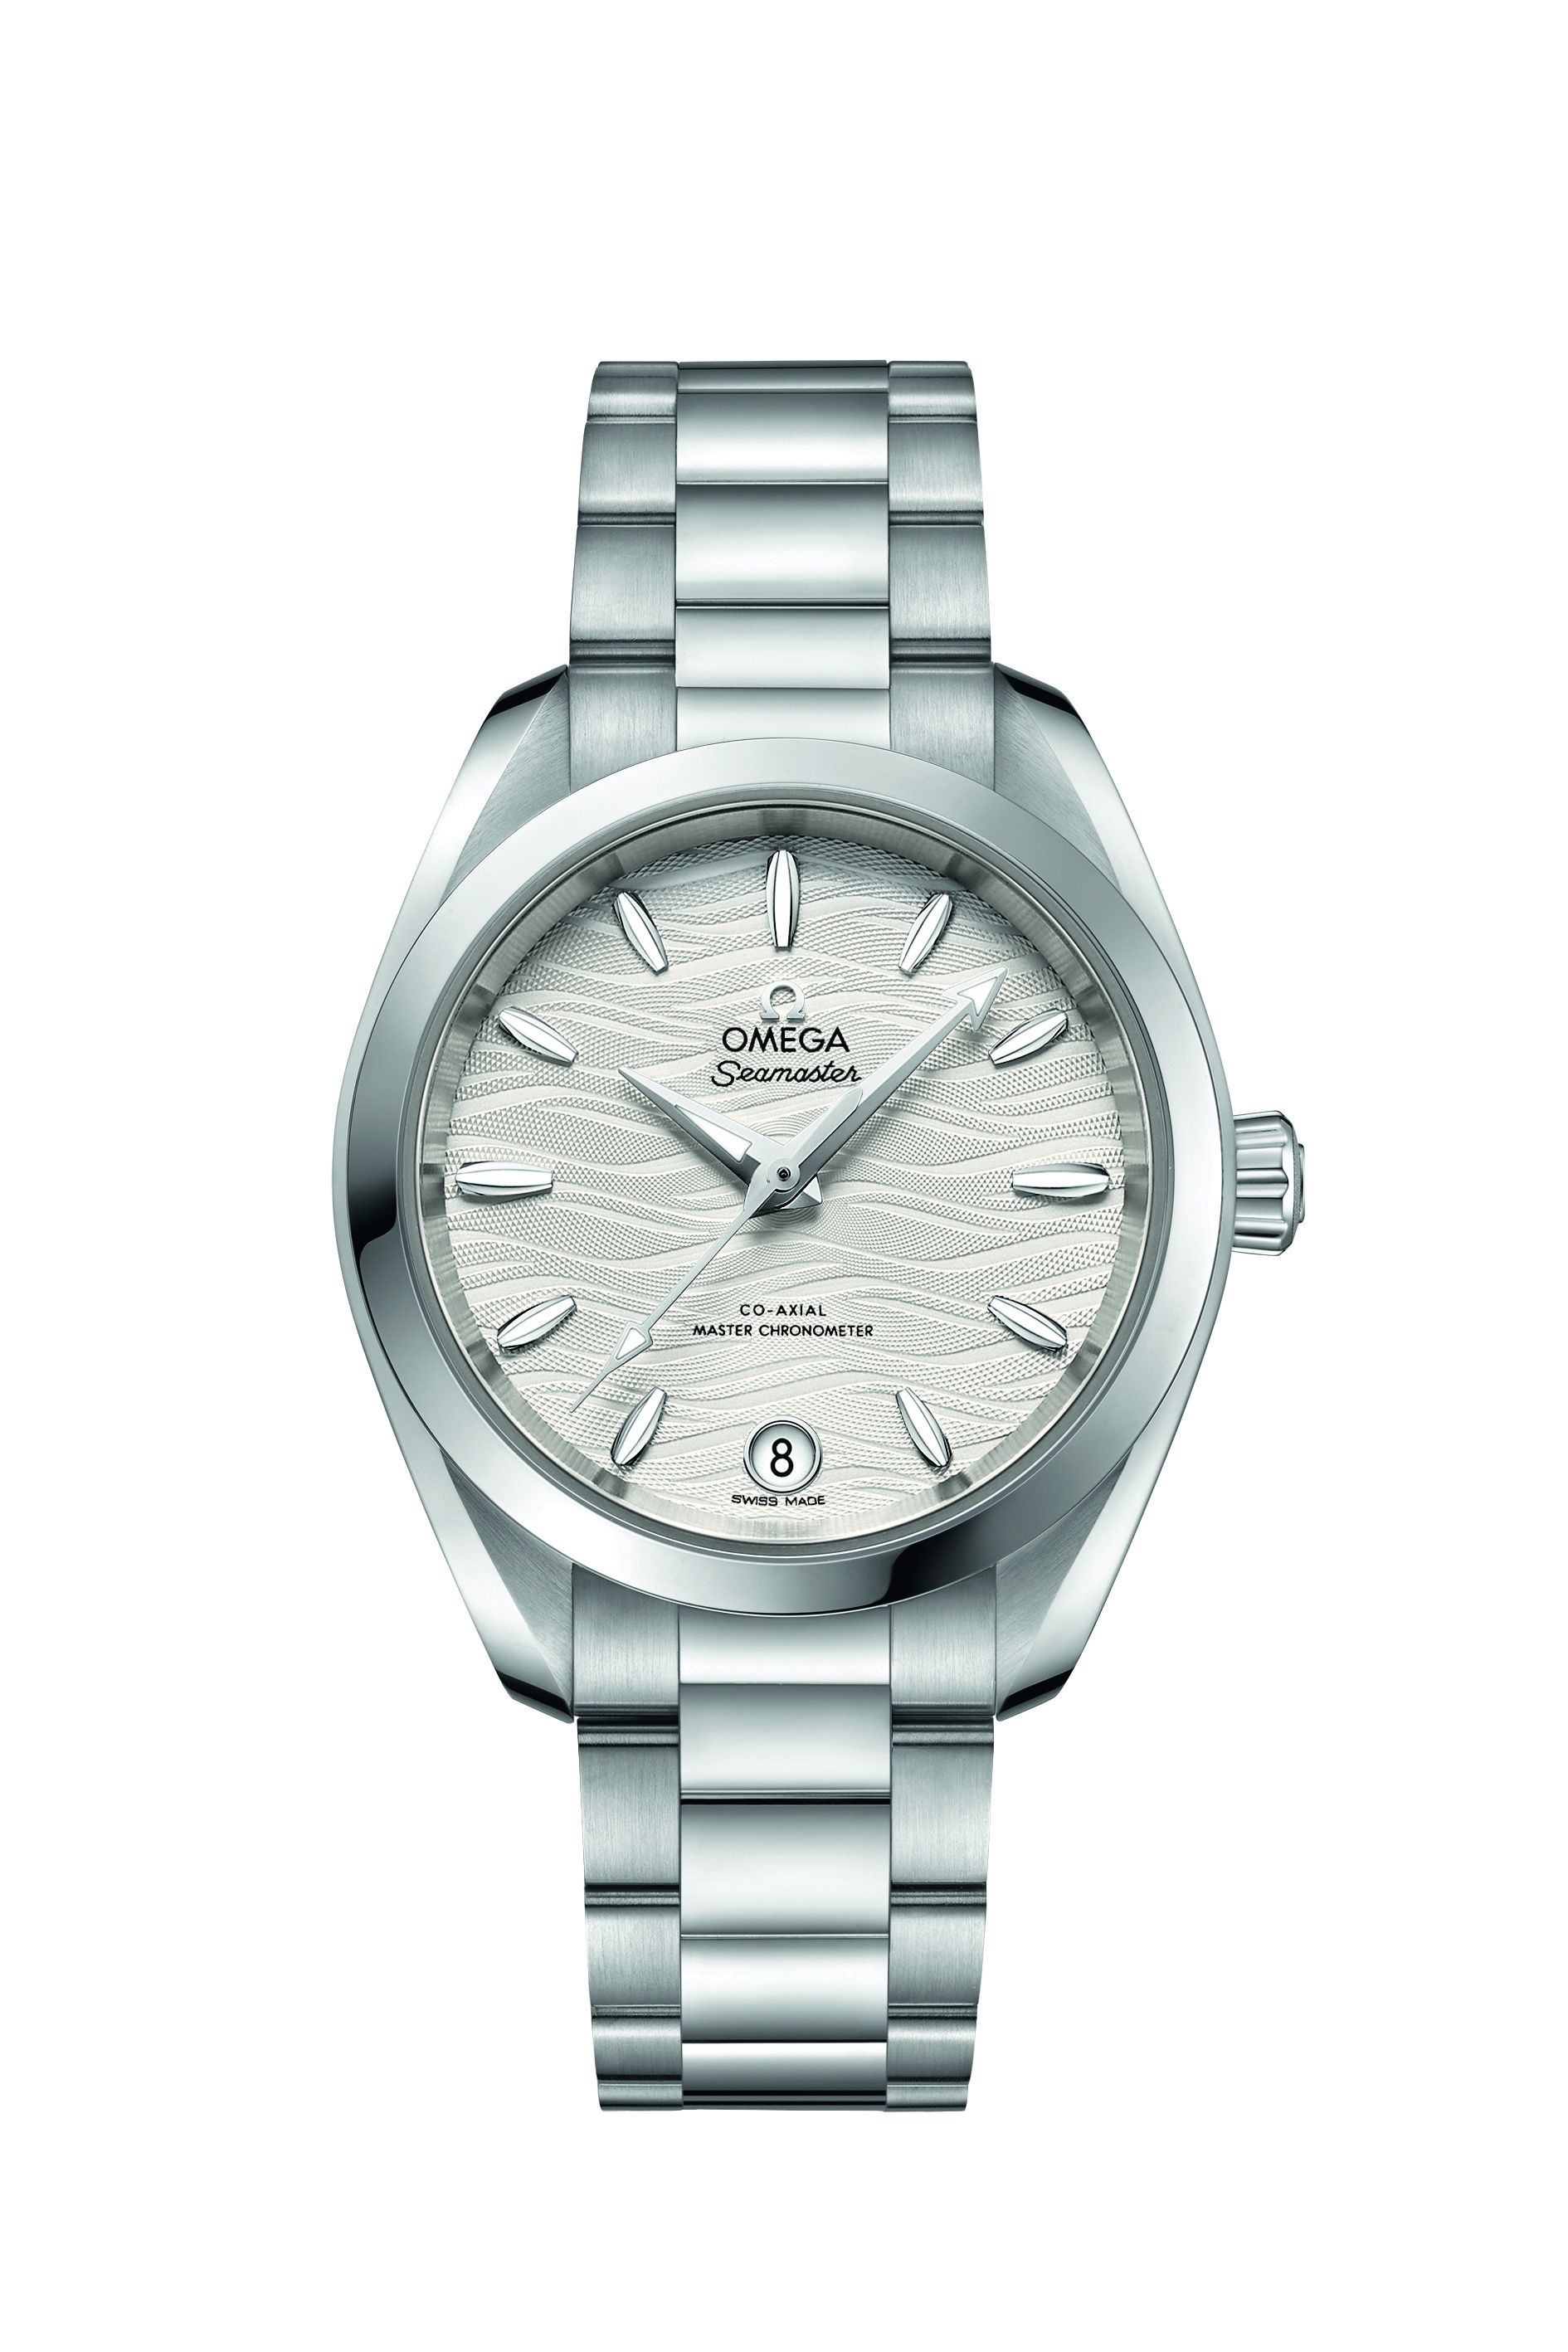 New Seamaster Aqua Terra OMEGA Co-Axial Master Chronometer